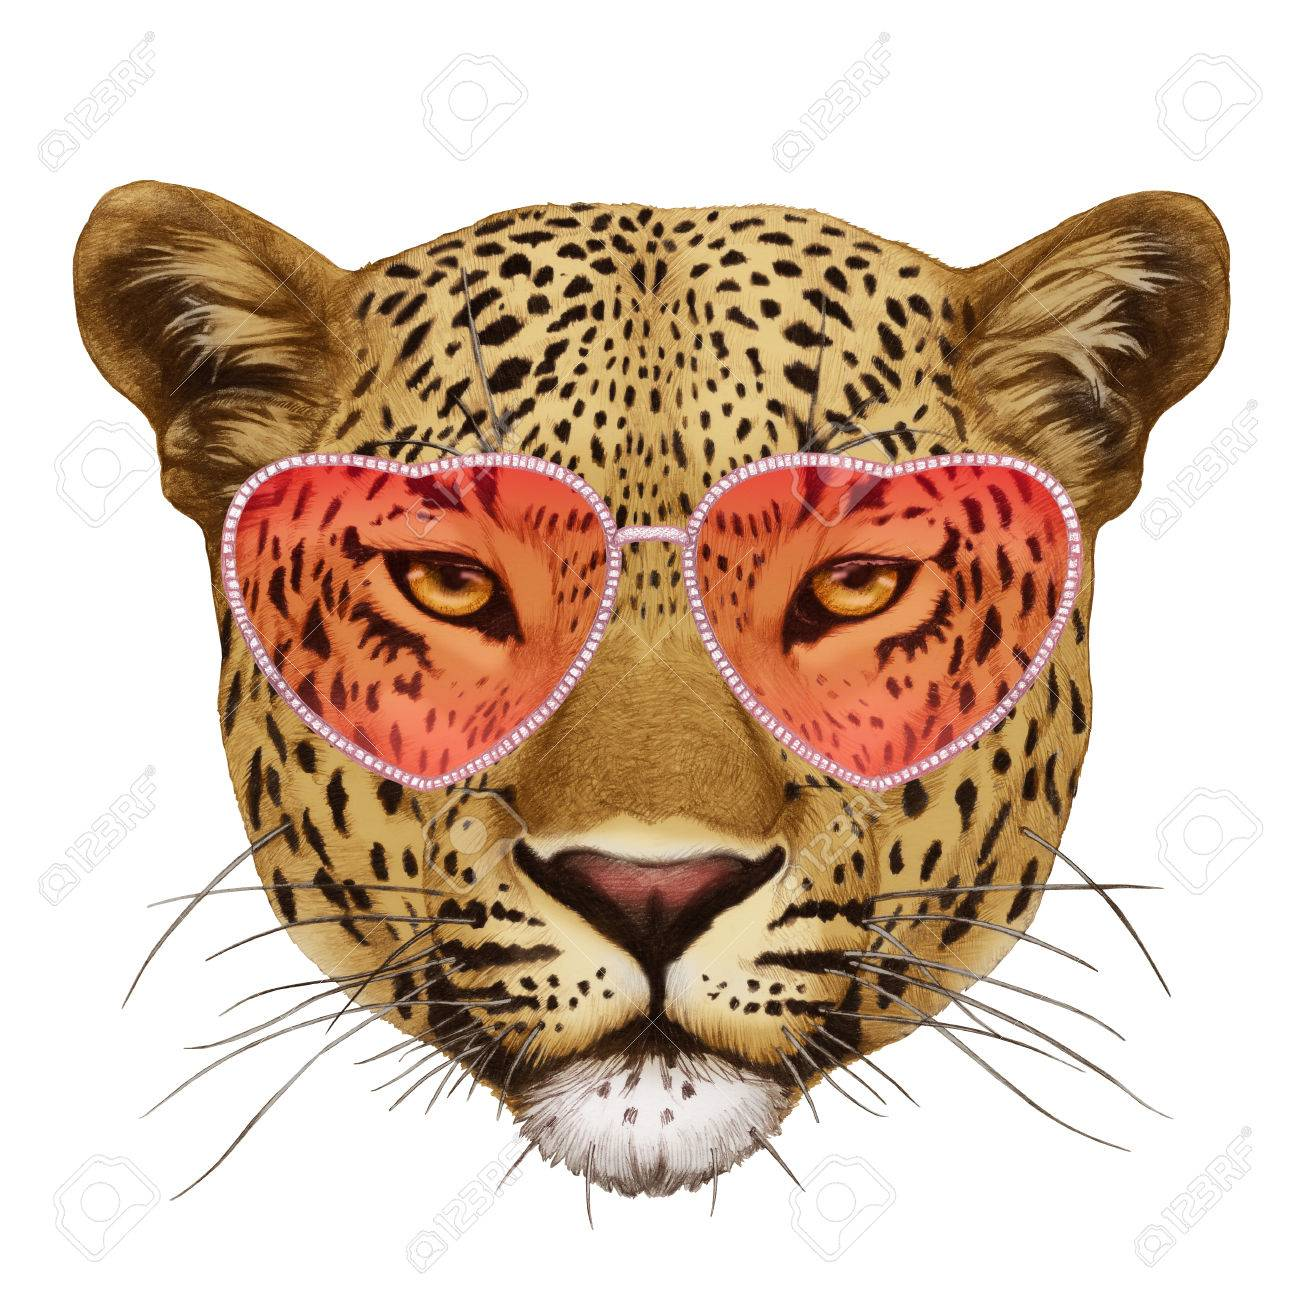 ad4c6626d2b Leopard In Love! Portrait Of Leopard With Sunglasses. Hand-drawn ...